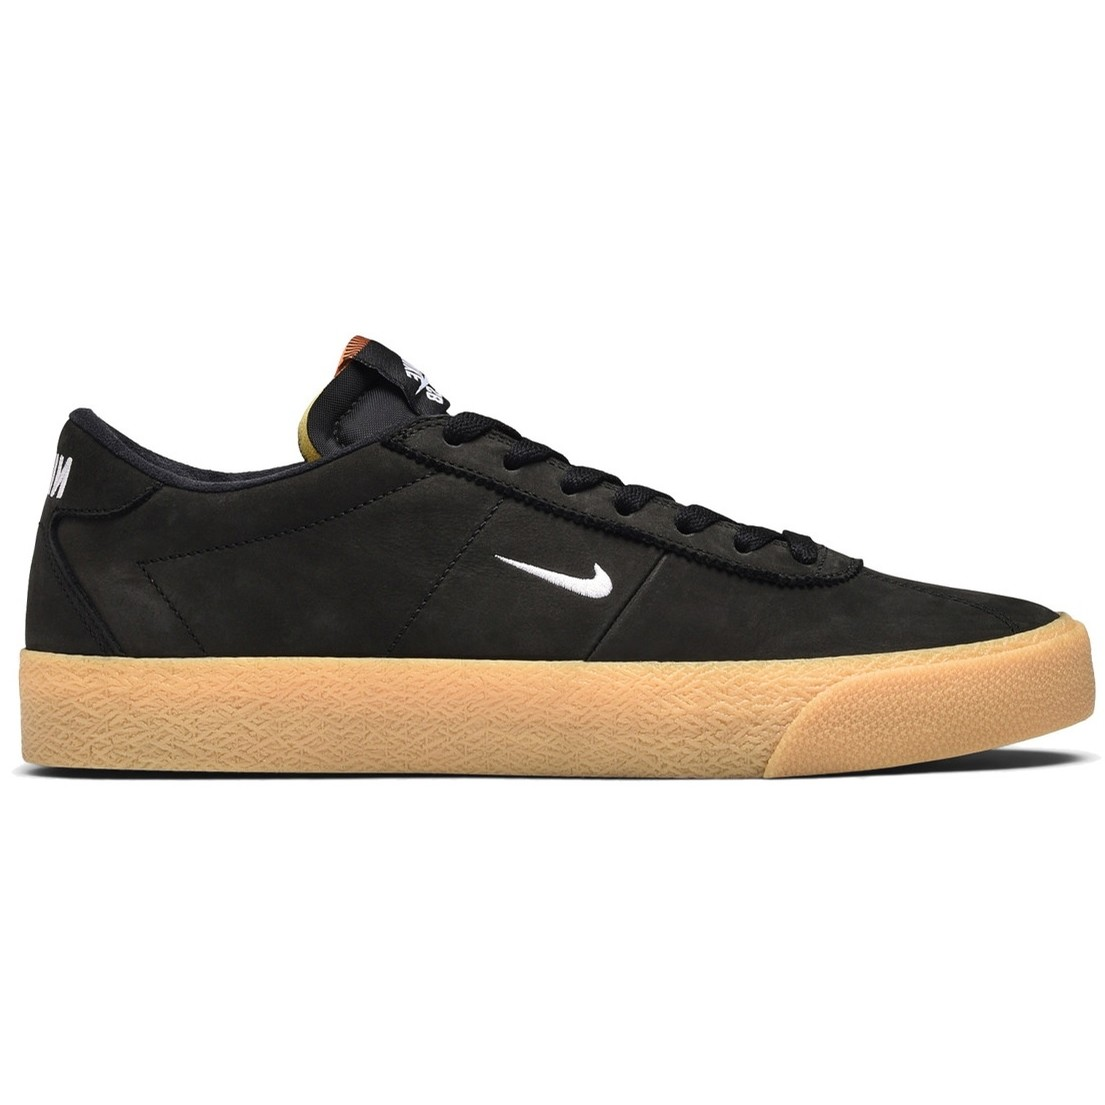 Nike SB Zoom Bruin ISO (Black/White-Safety Orange)